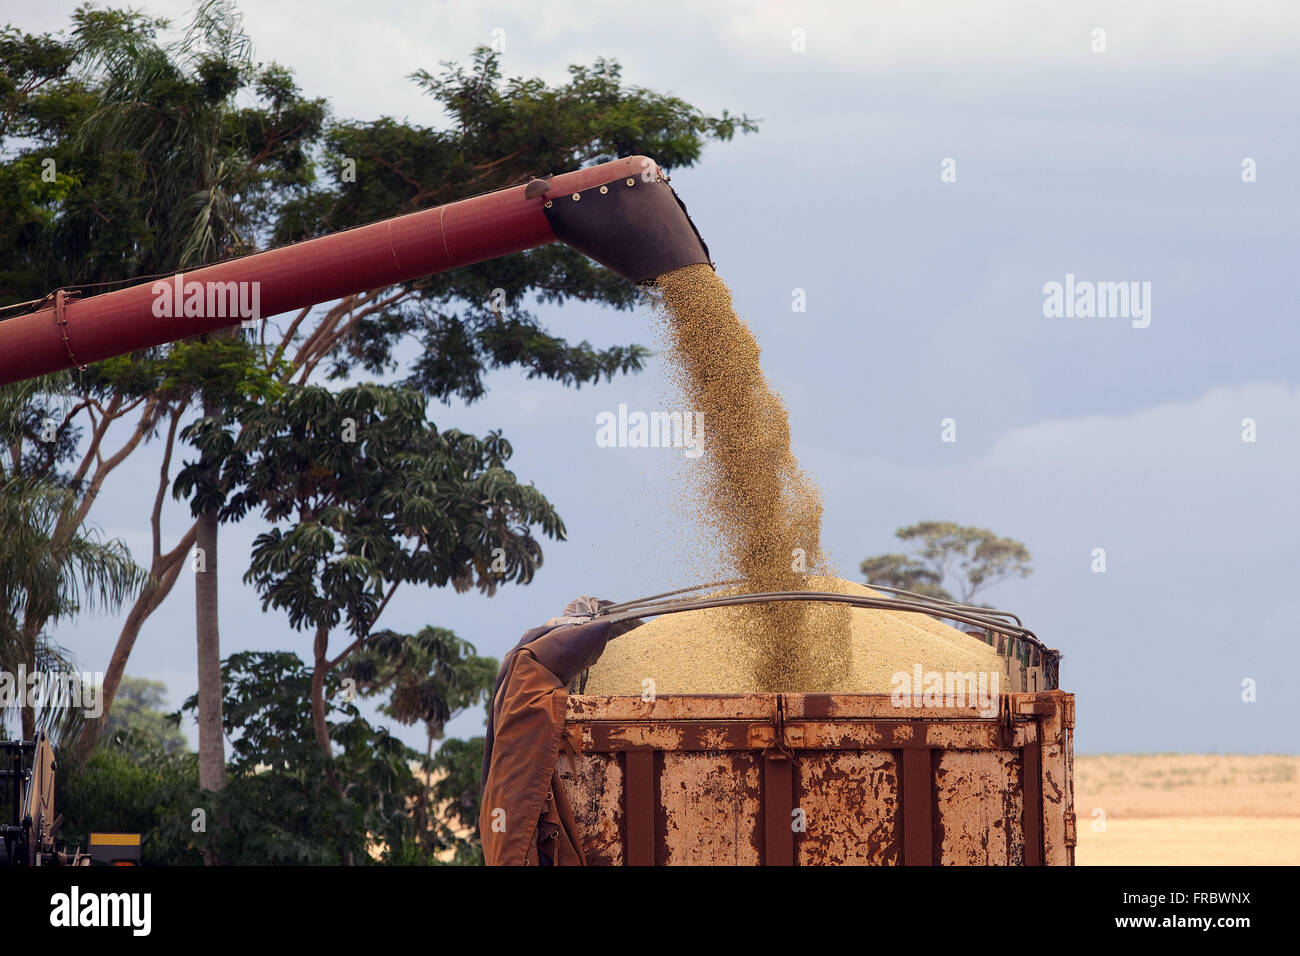 Unloading of soybeans in the bucket truck - Stock Image